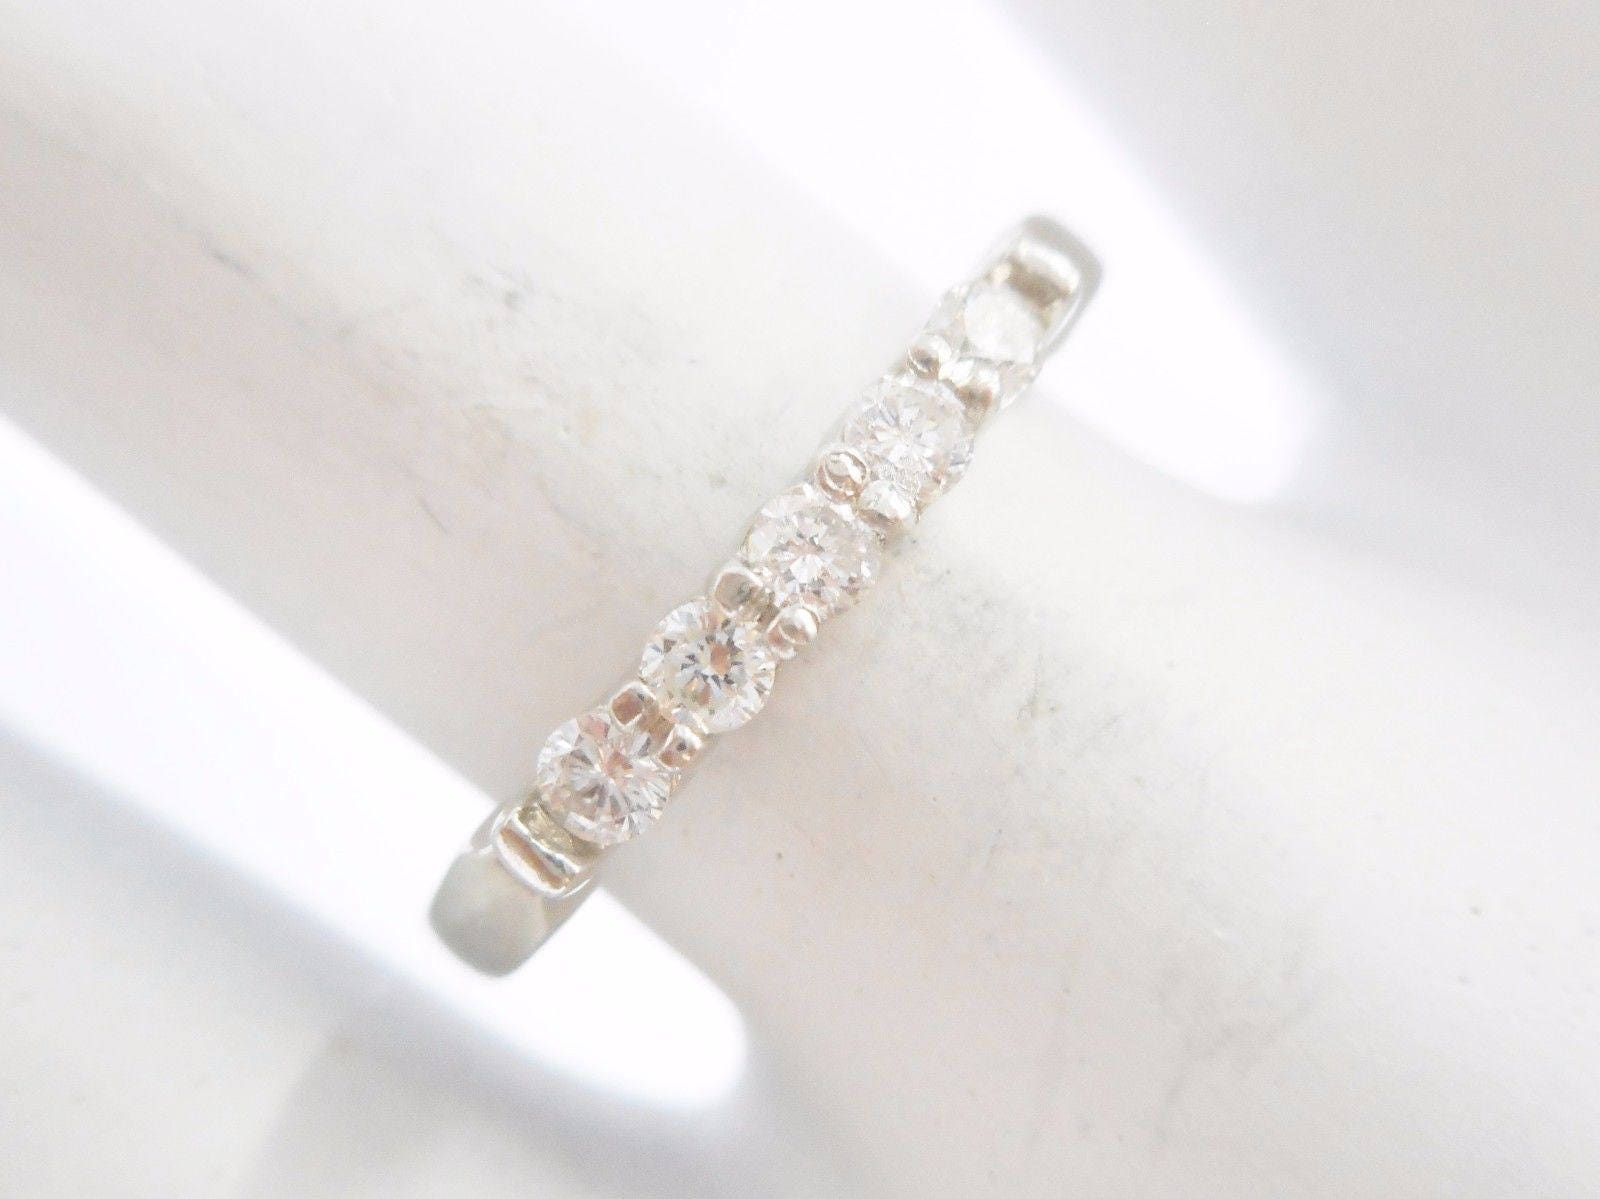 rings white stone nl set band wide in diamond and gold with bands jewelry baguette thick cut ring radiant wg channel engagement side